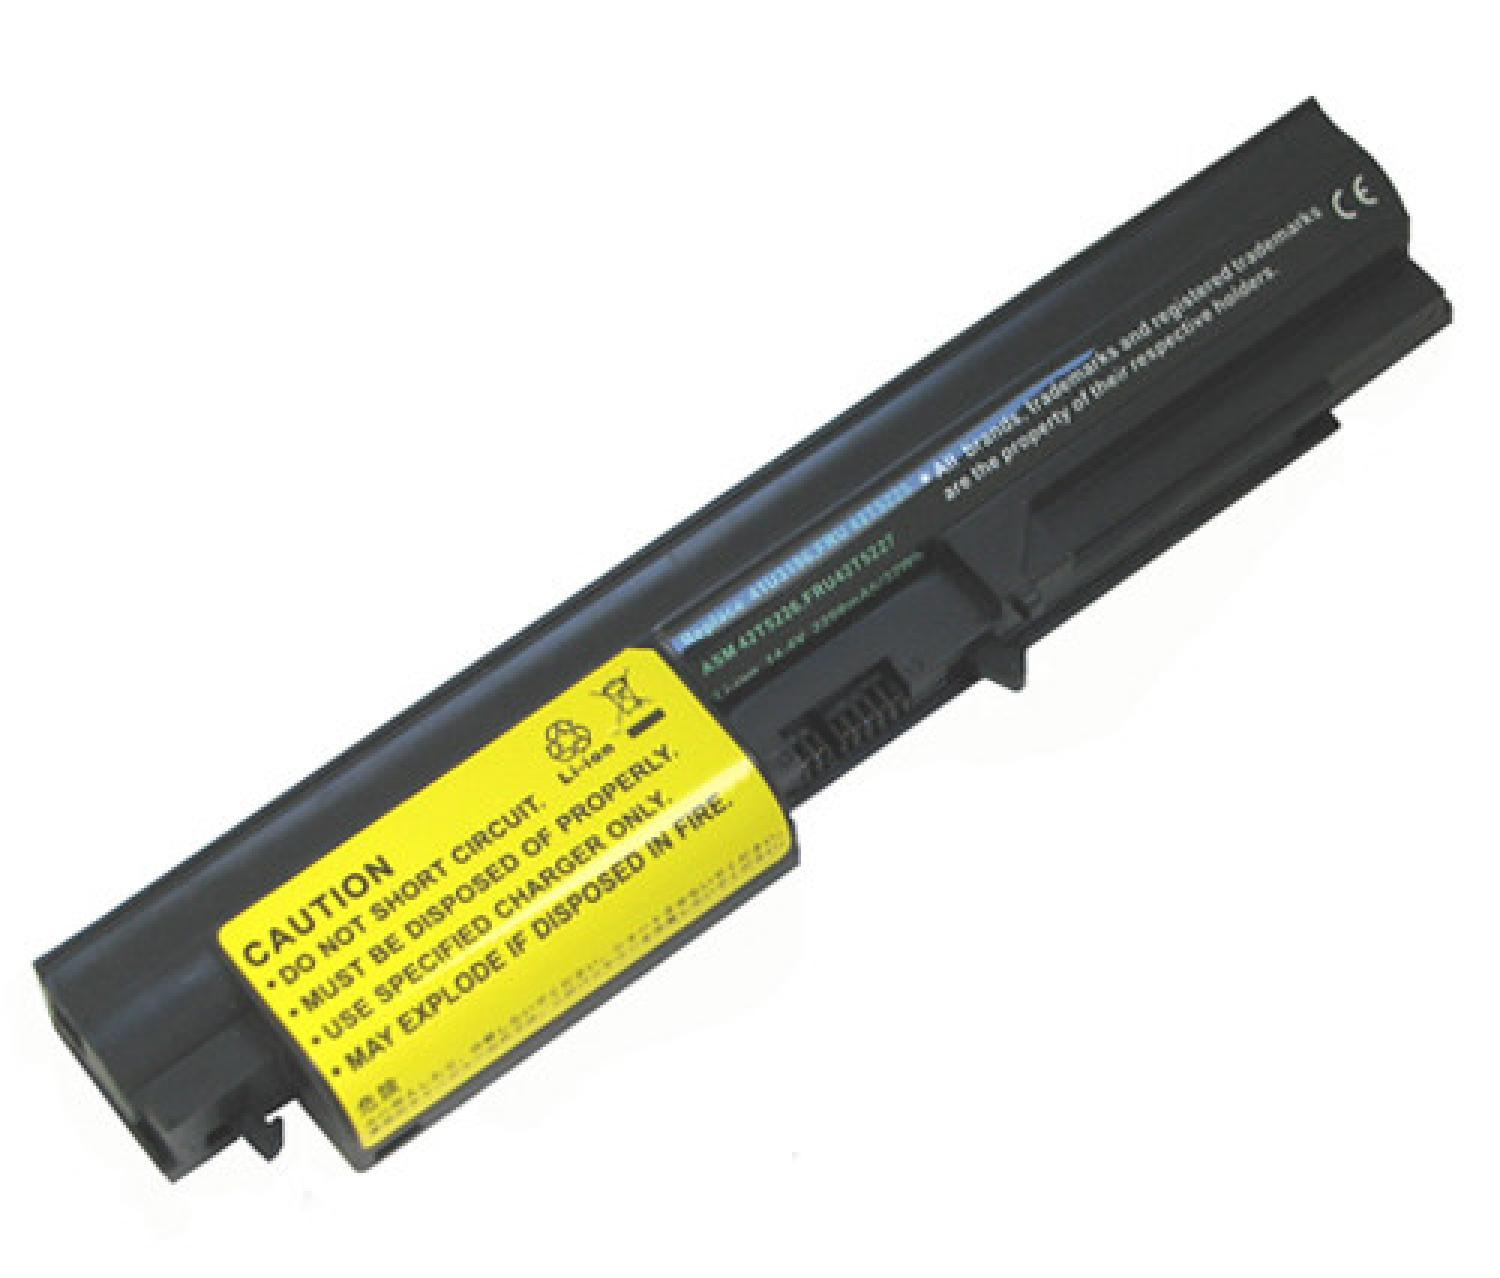 Original Battery/Batre/Baterai IBM Lenovo ThinkPad T61 R61 R400 14-inch Lithium-ion Termurah